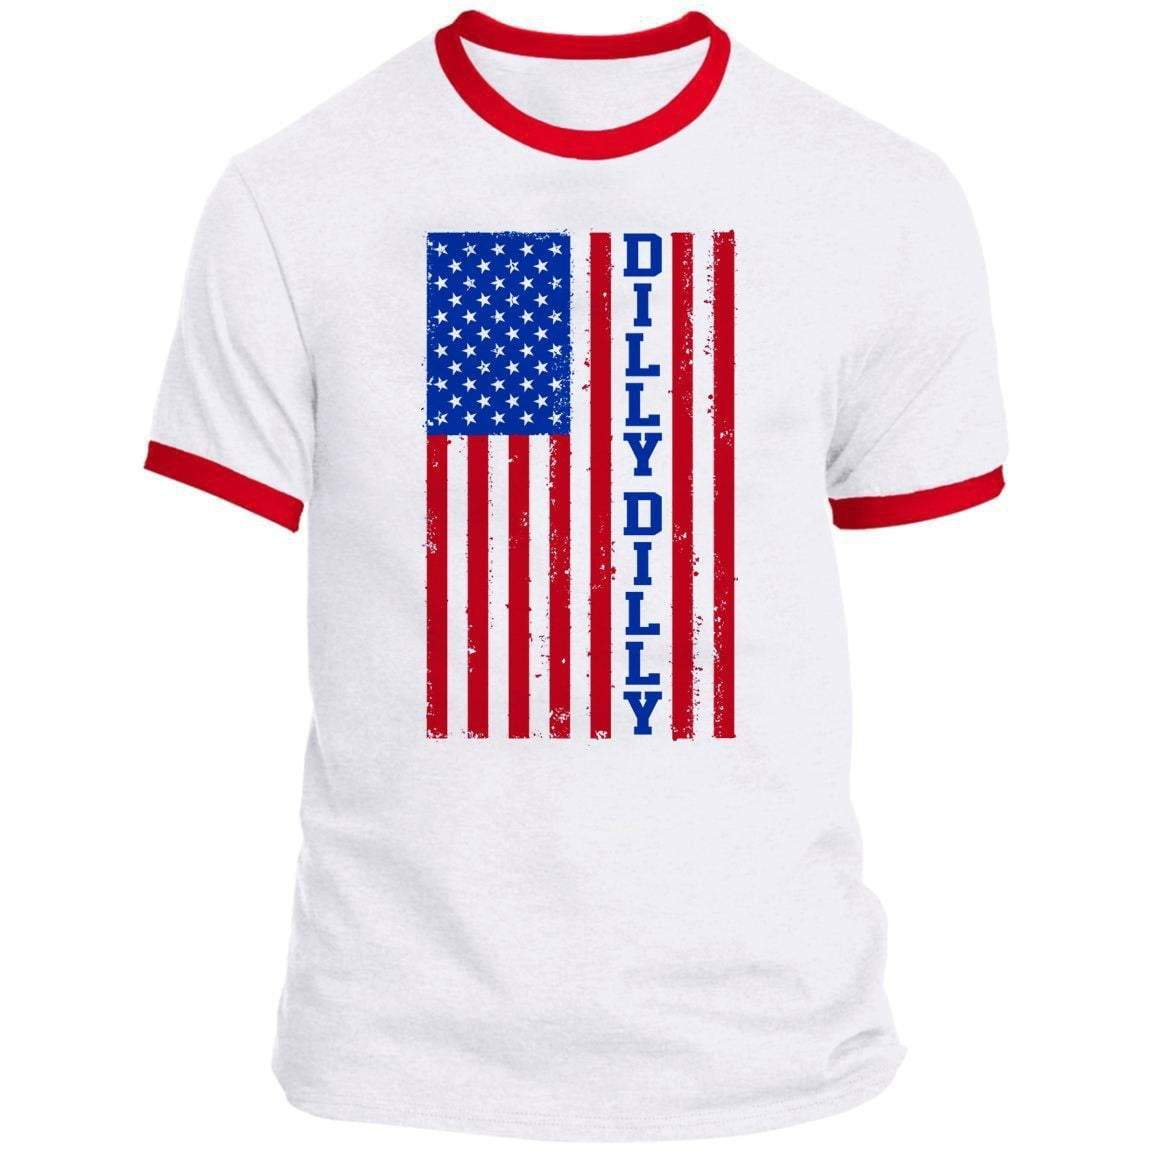 DILLY DILLY FLAG Ringer Tee